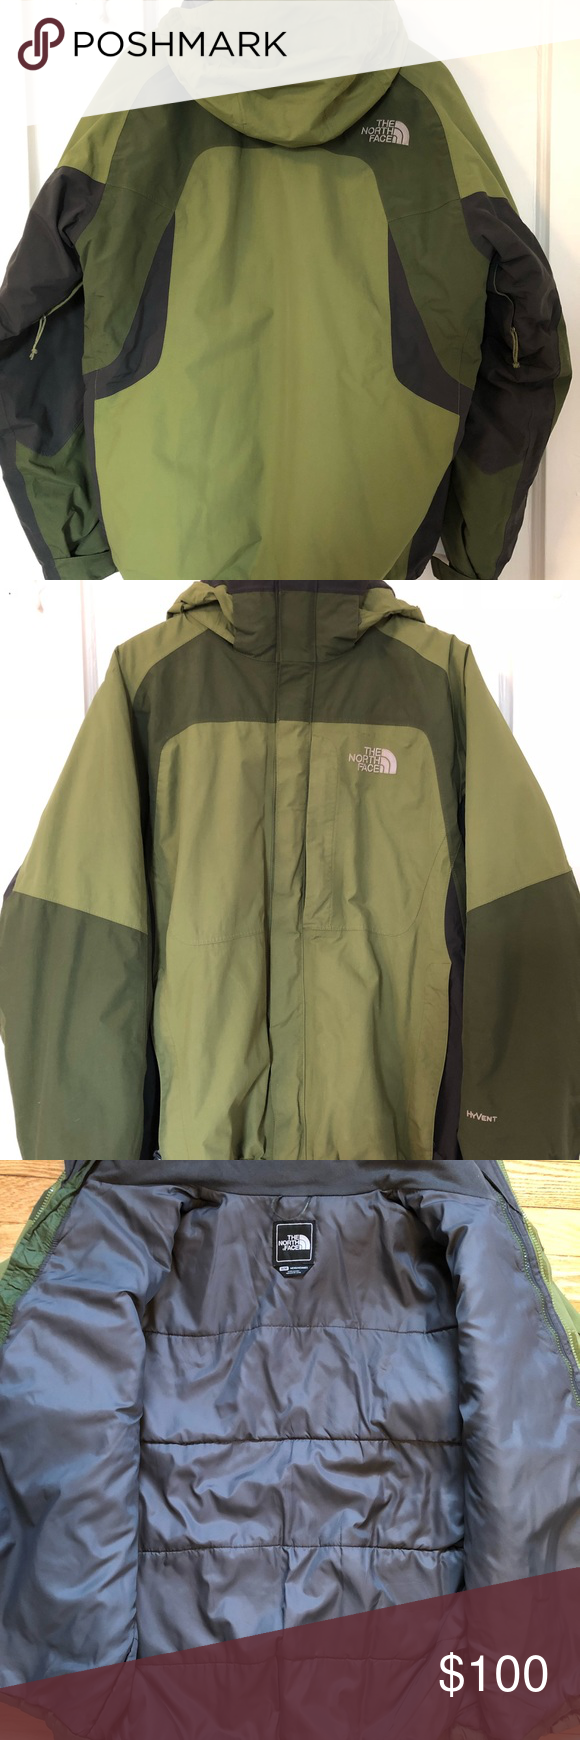 The North Face Hyvent 2 1 Jacket Green Green Jacket Green North Face Jacket North Face Jacket [ 1740 x 580 Pixel ]